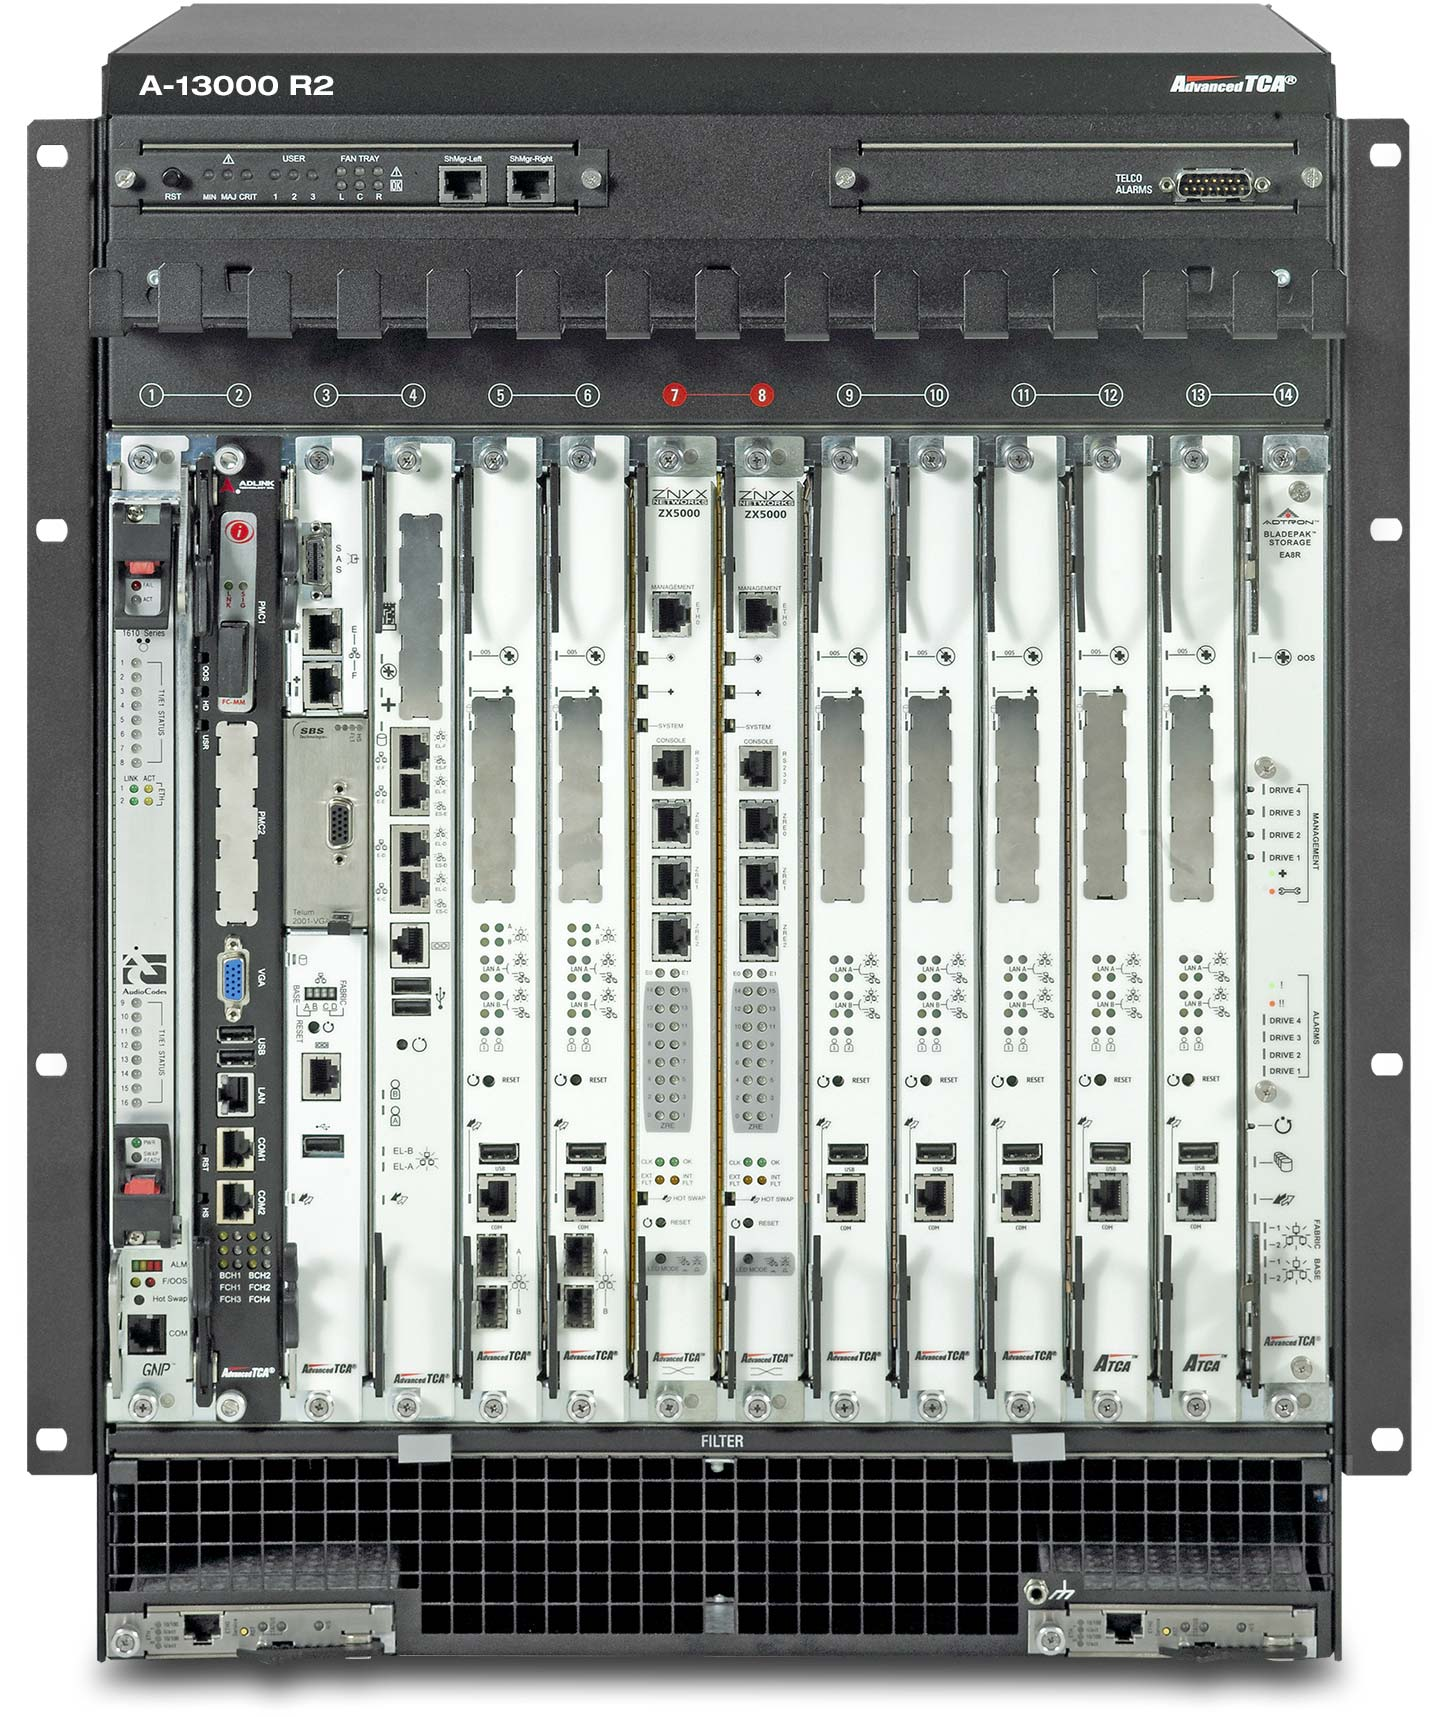 A-13000 ACTA Platform and Communications Server